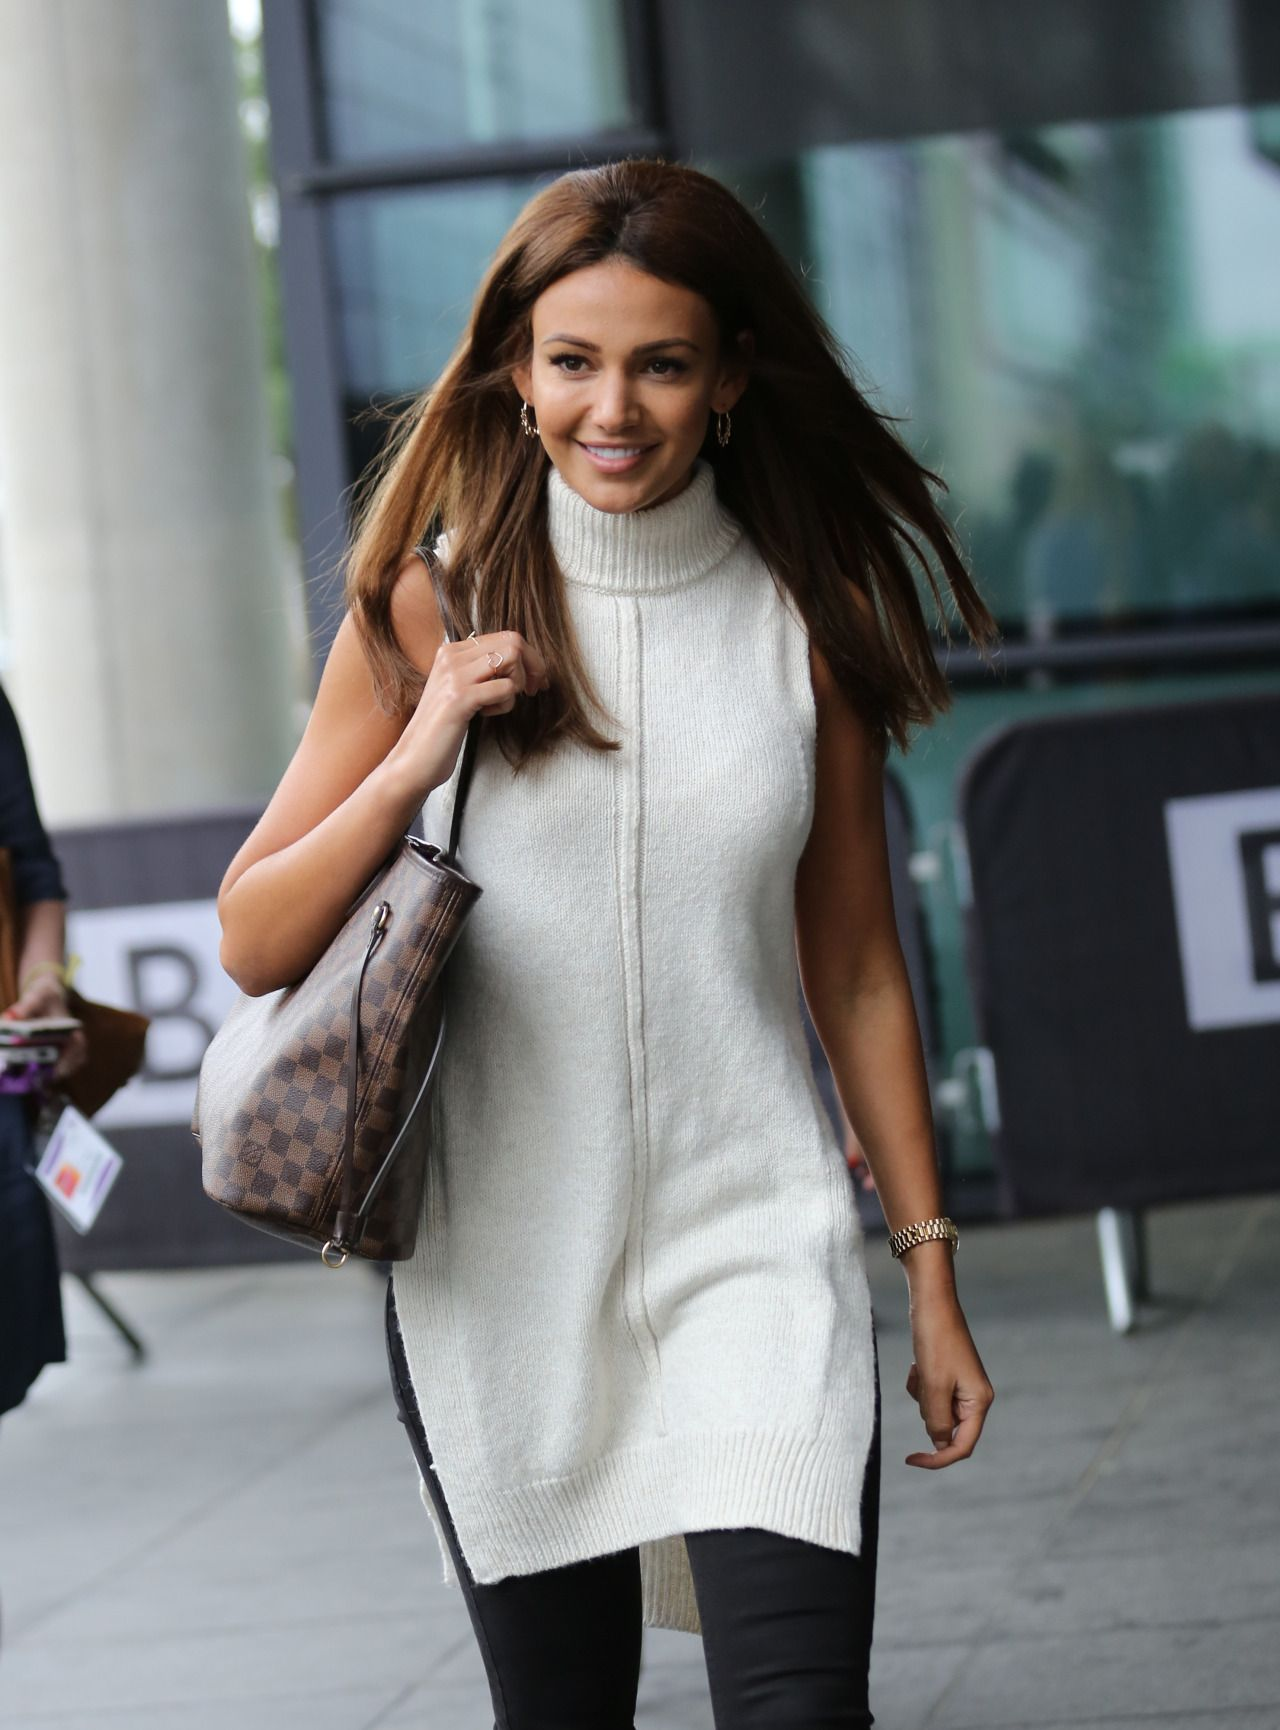 """Michelle Keegan at the Outside """"BBC Breakfast"""" Manchester (5 September, 2016)"""